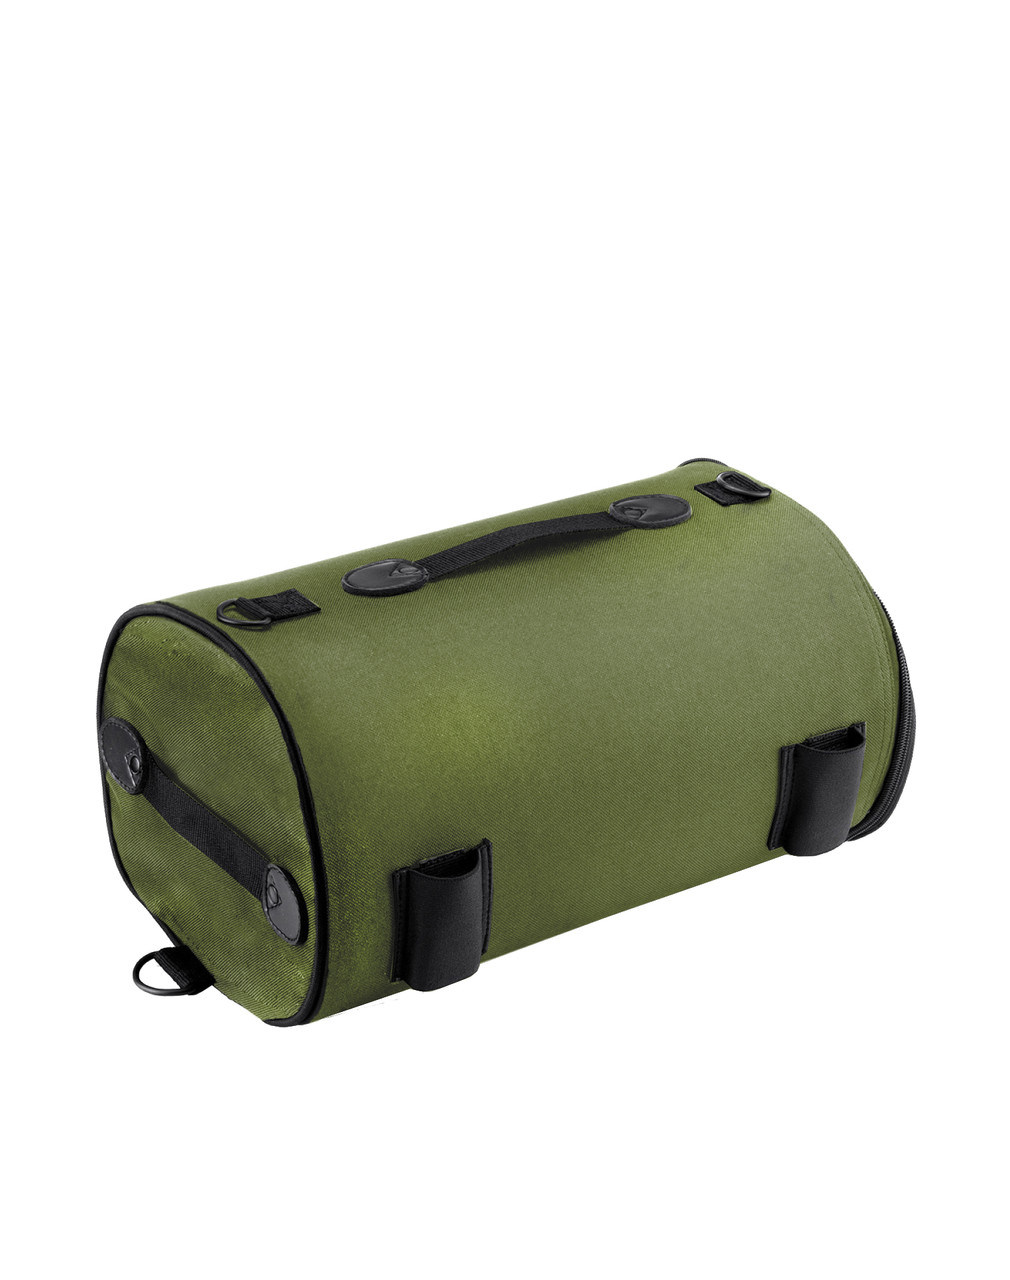 VikingBags Extra Large Studded Green Suzuki Motorcycle Tail Bag Roll Bag